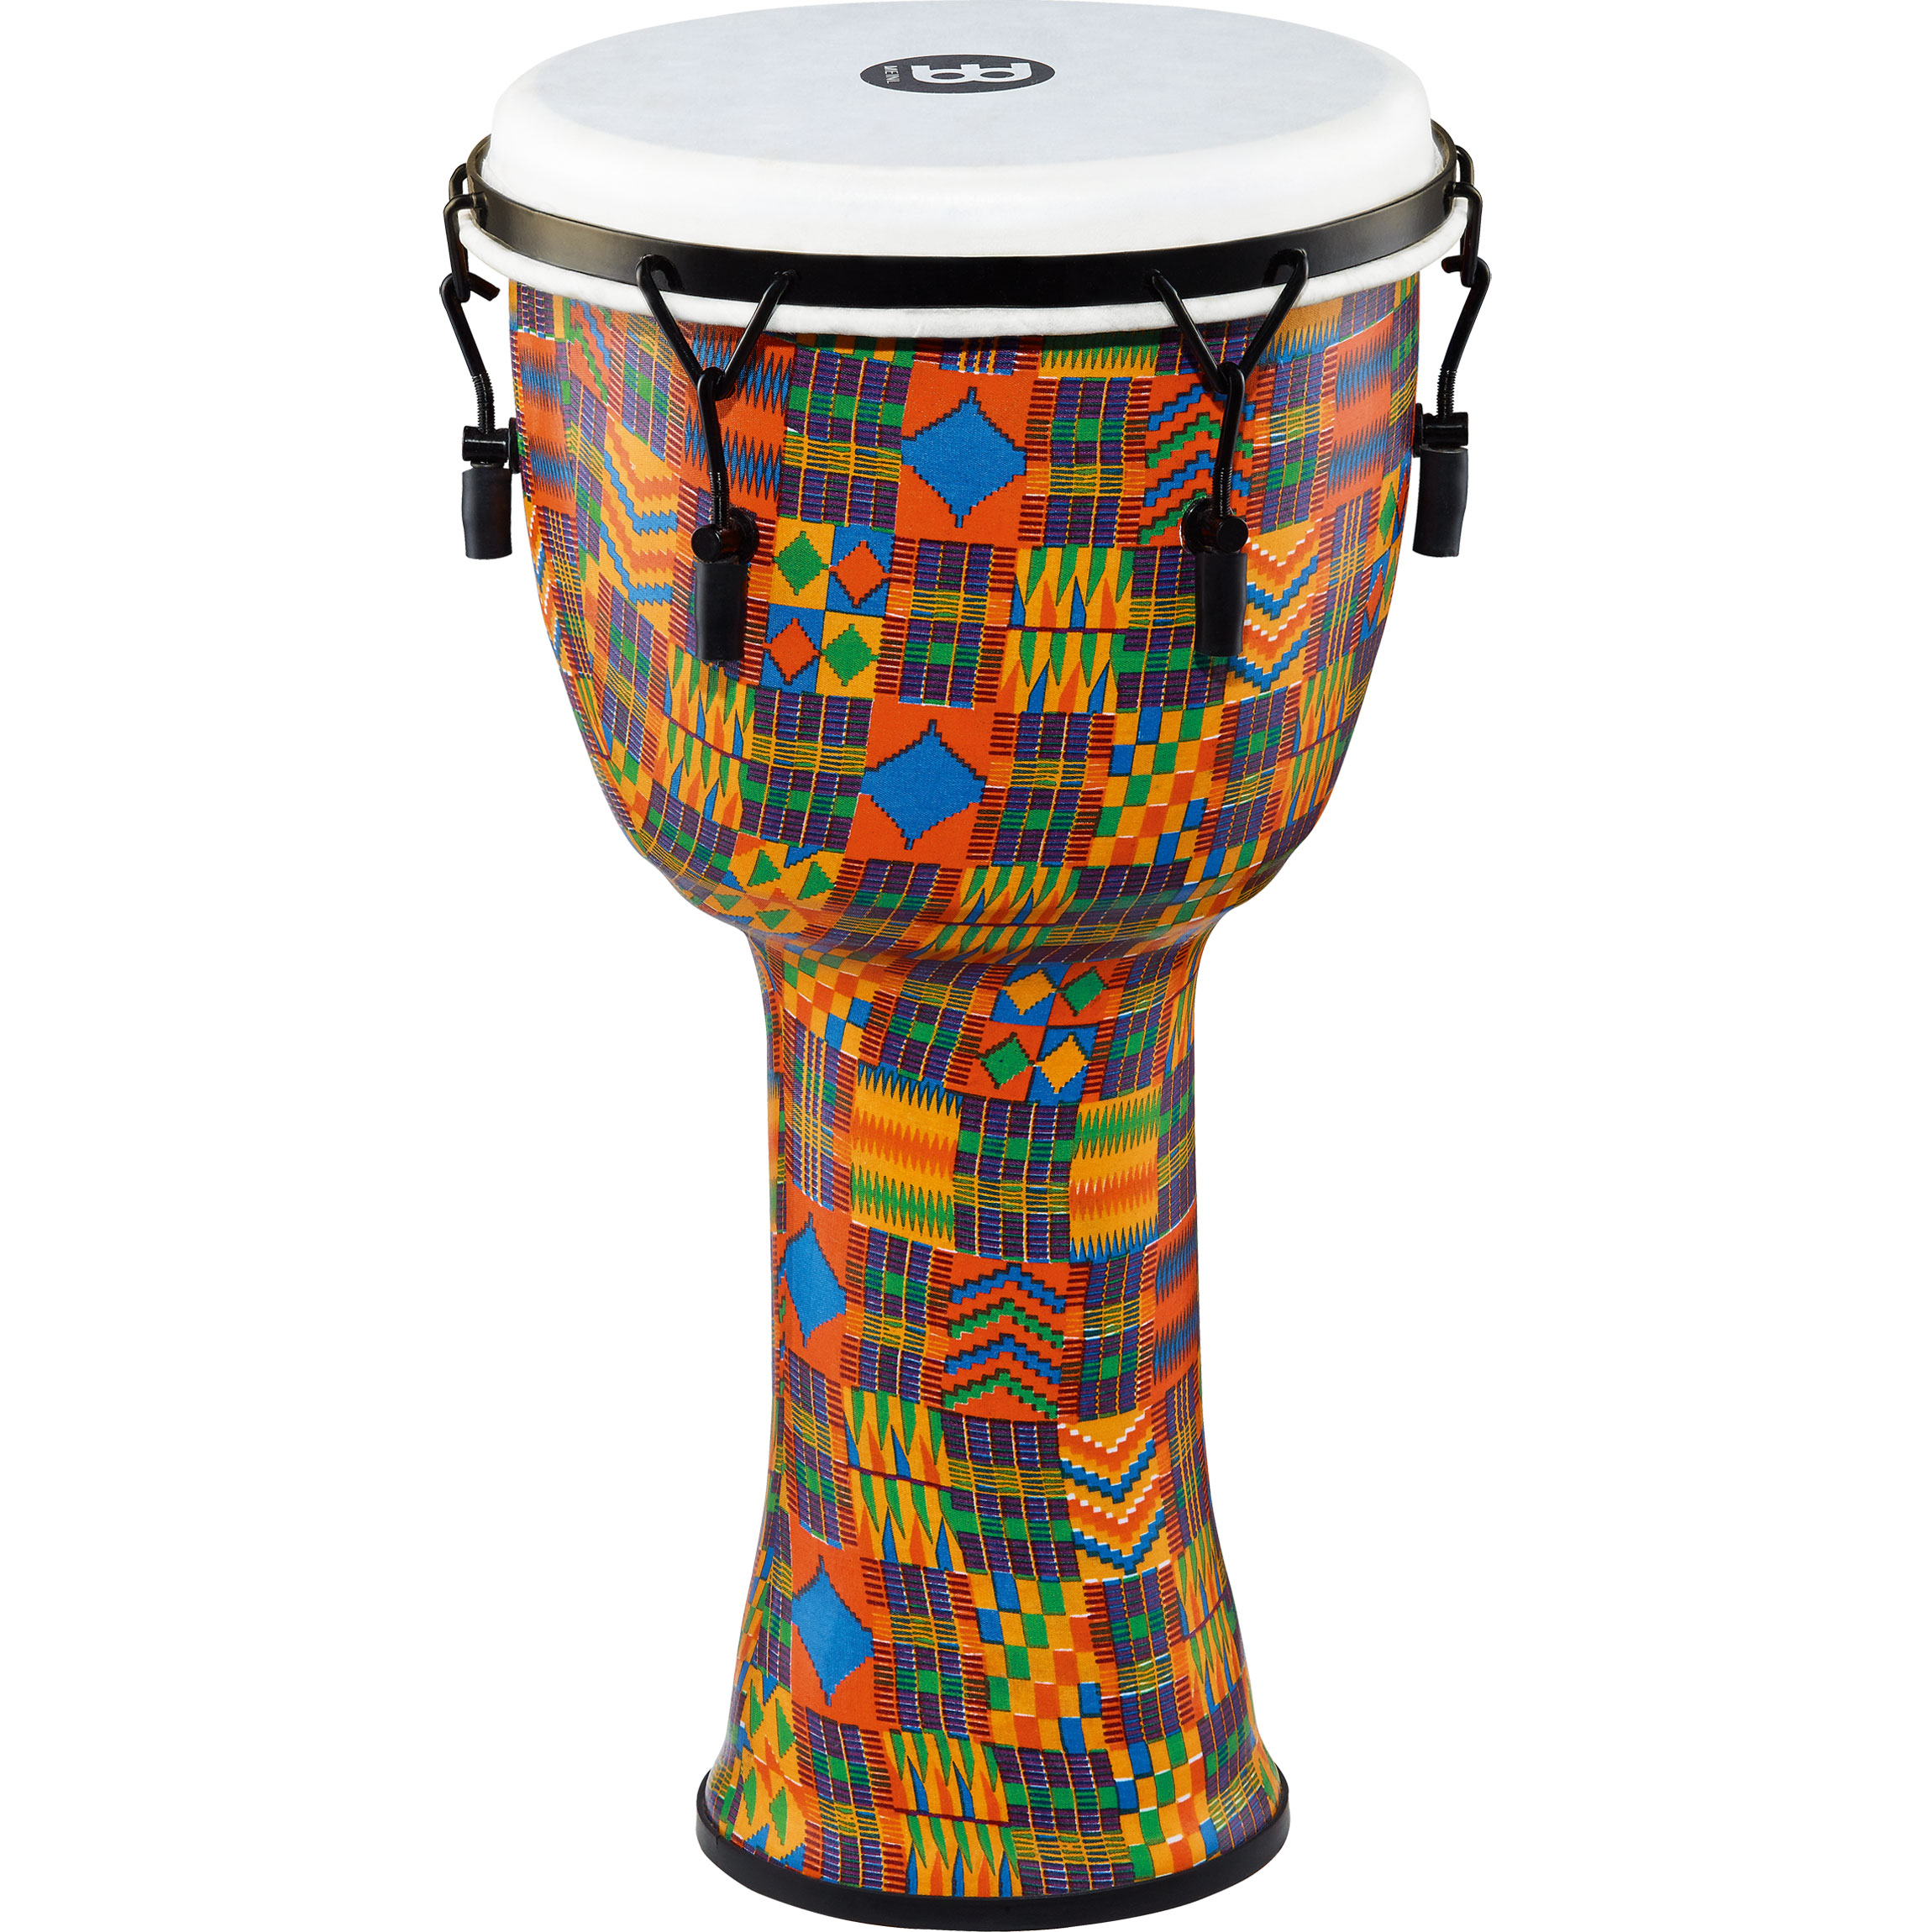 "Meinl 12"" Mechanically-Tuned Travel Djembe in Kenyan Quilt with Synthetic Head"